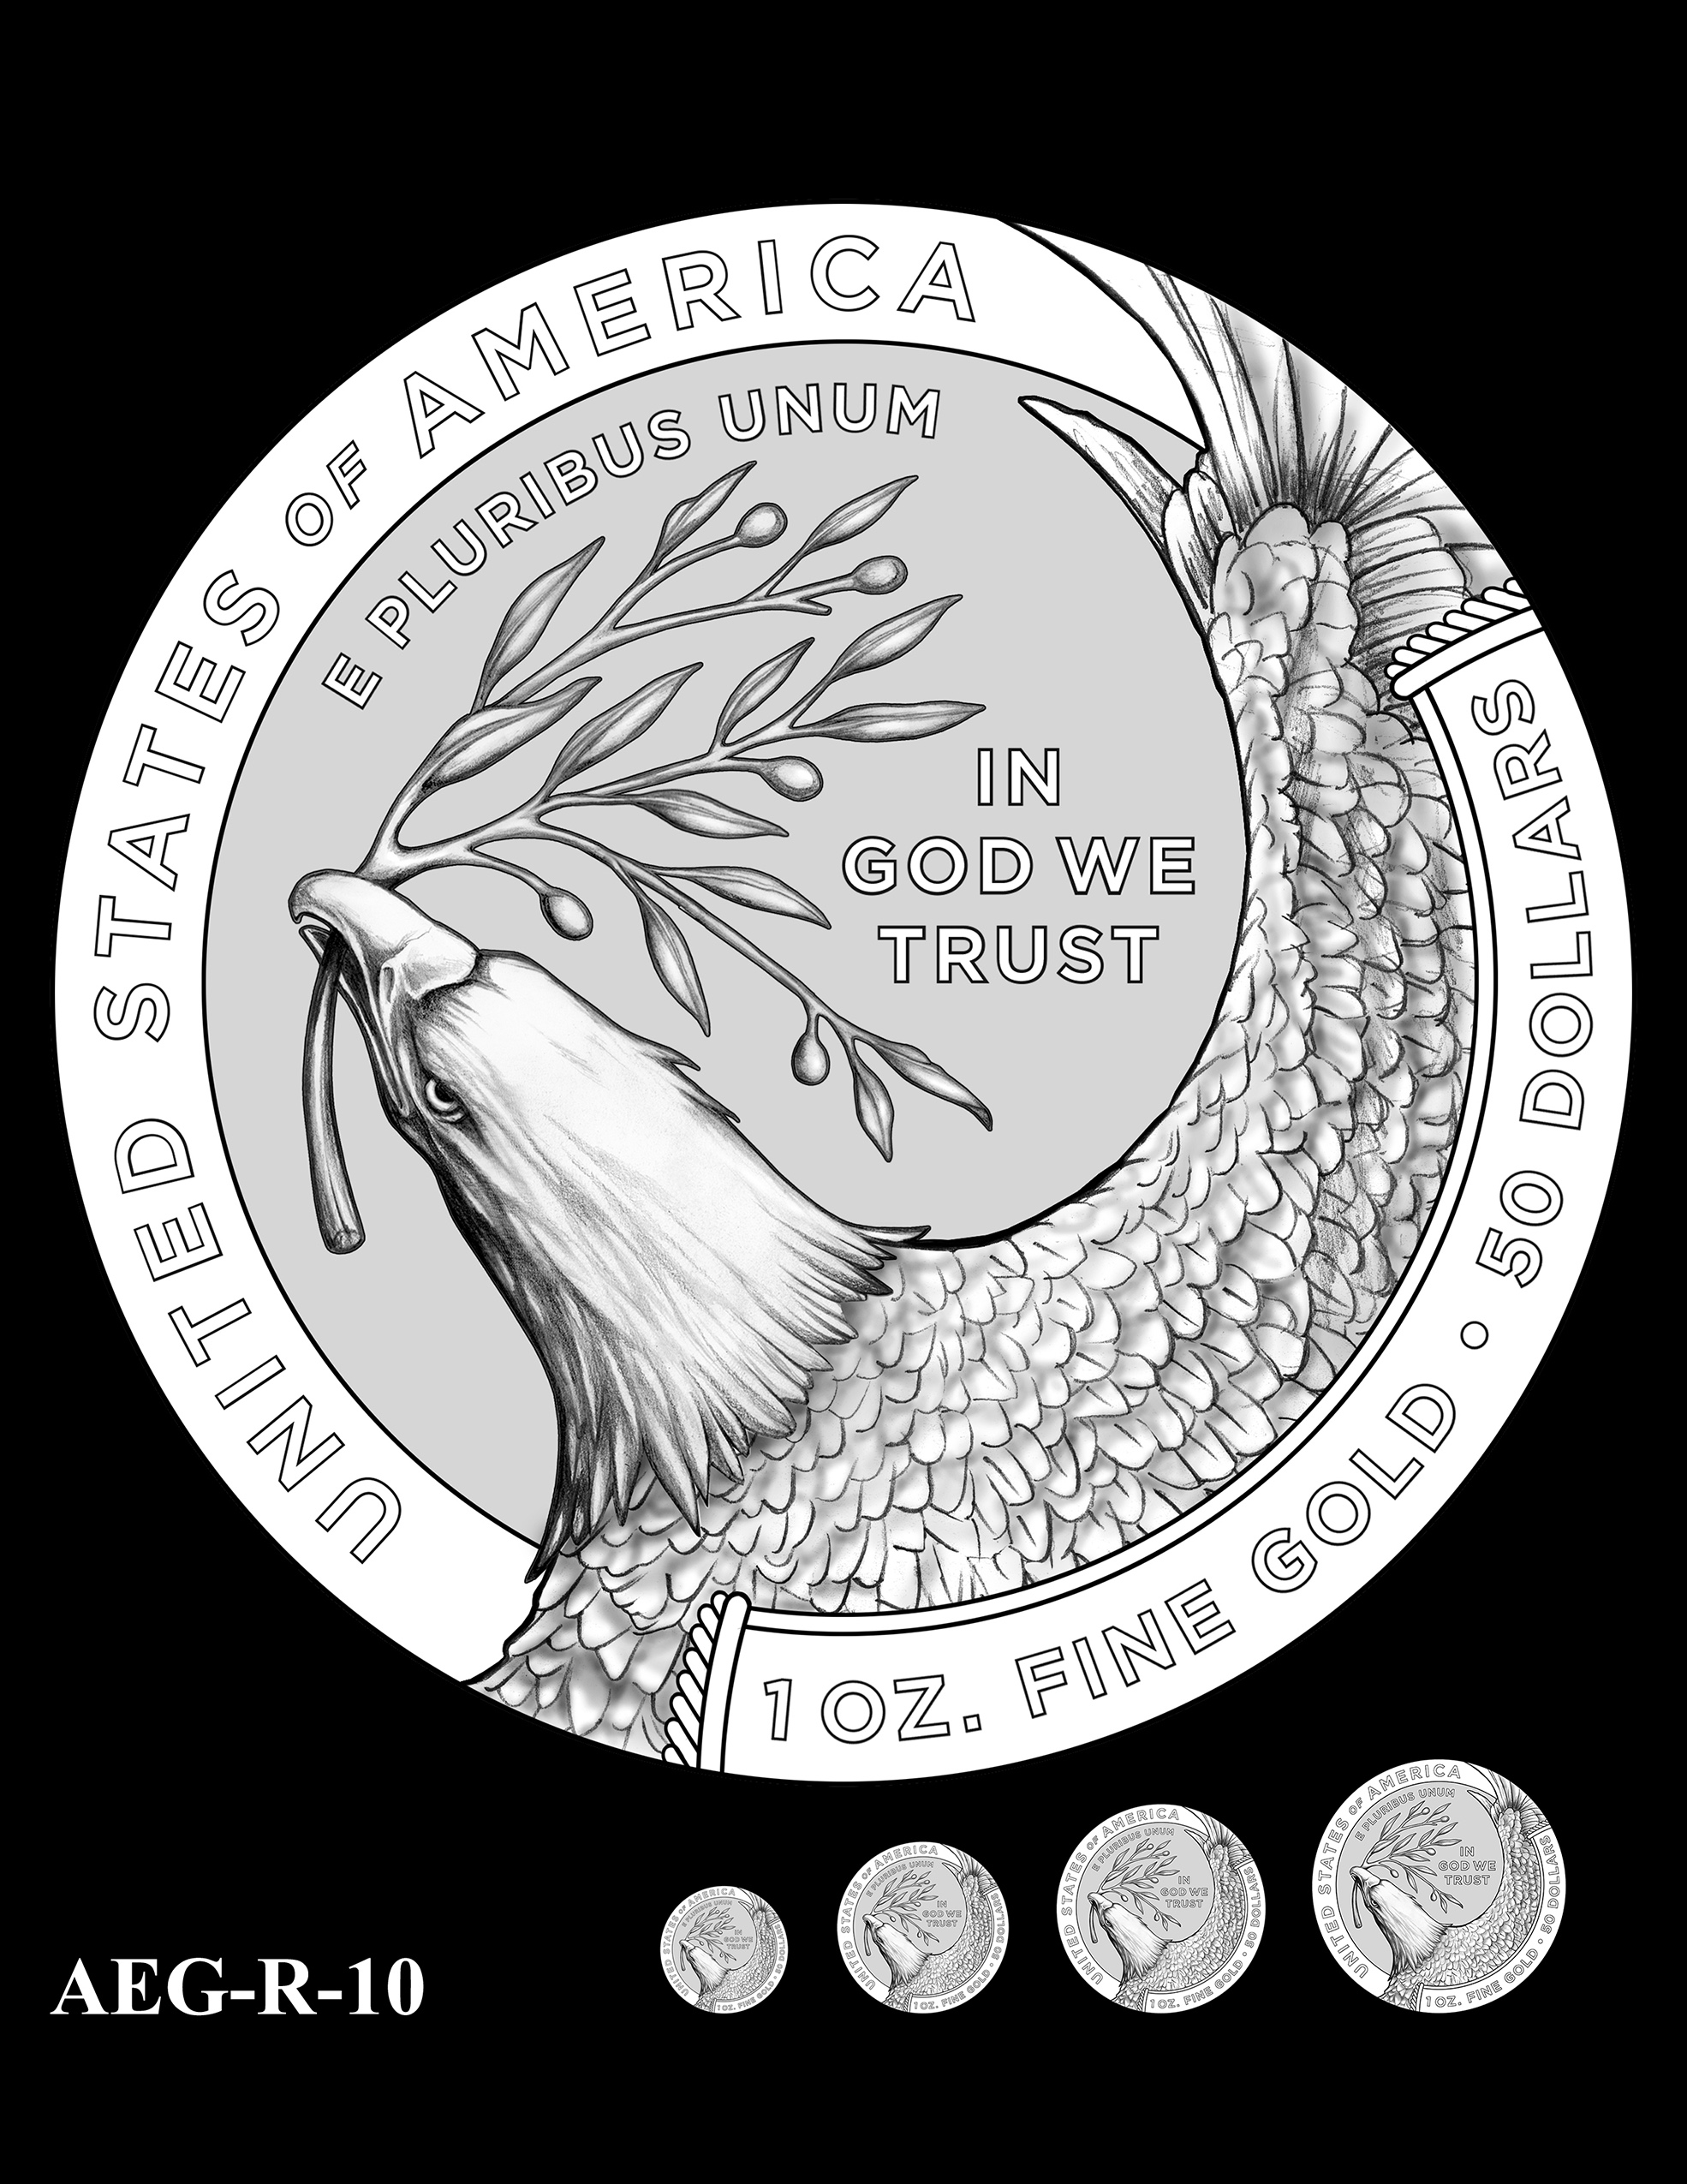 AEG-R-10 -- American Eagle Proof and Bullion Gold Coin - Reverse